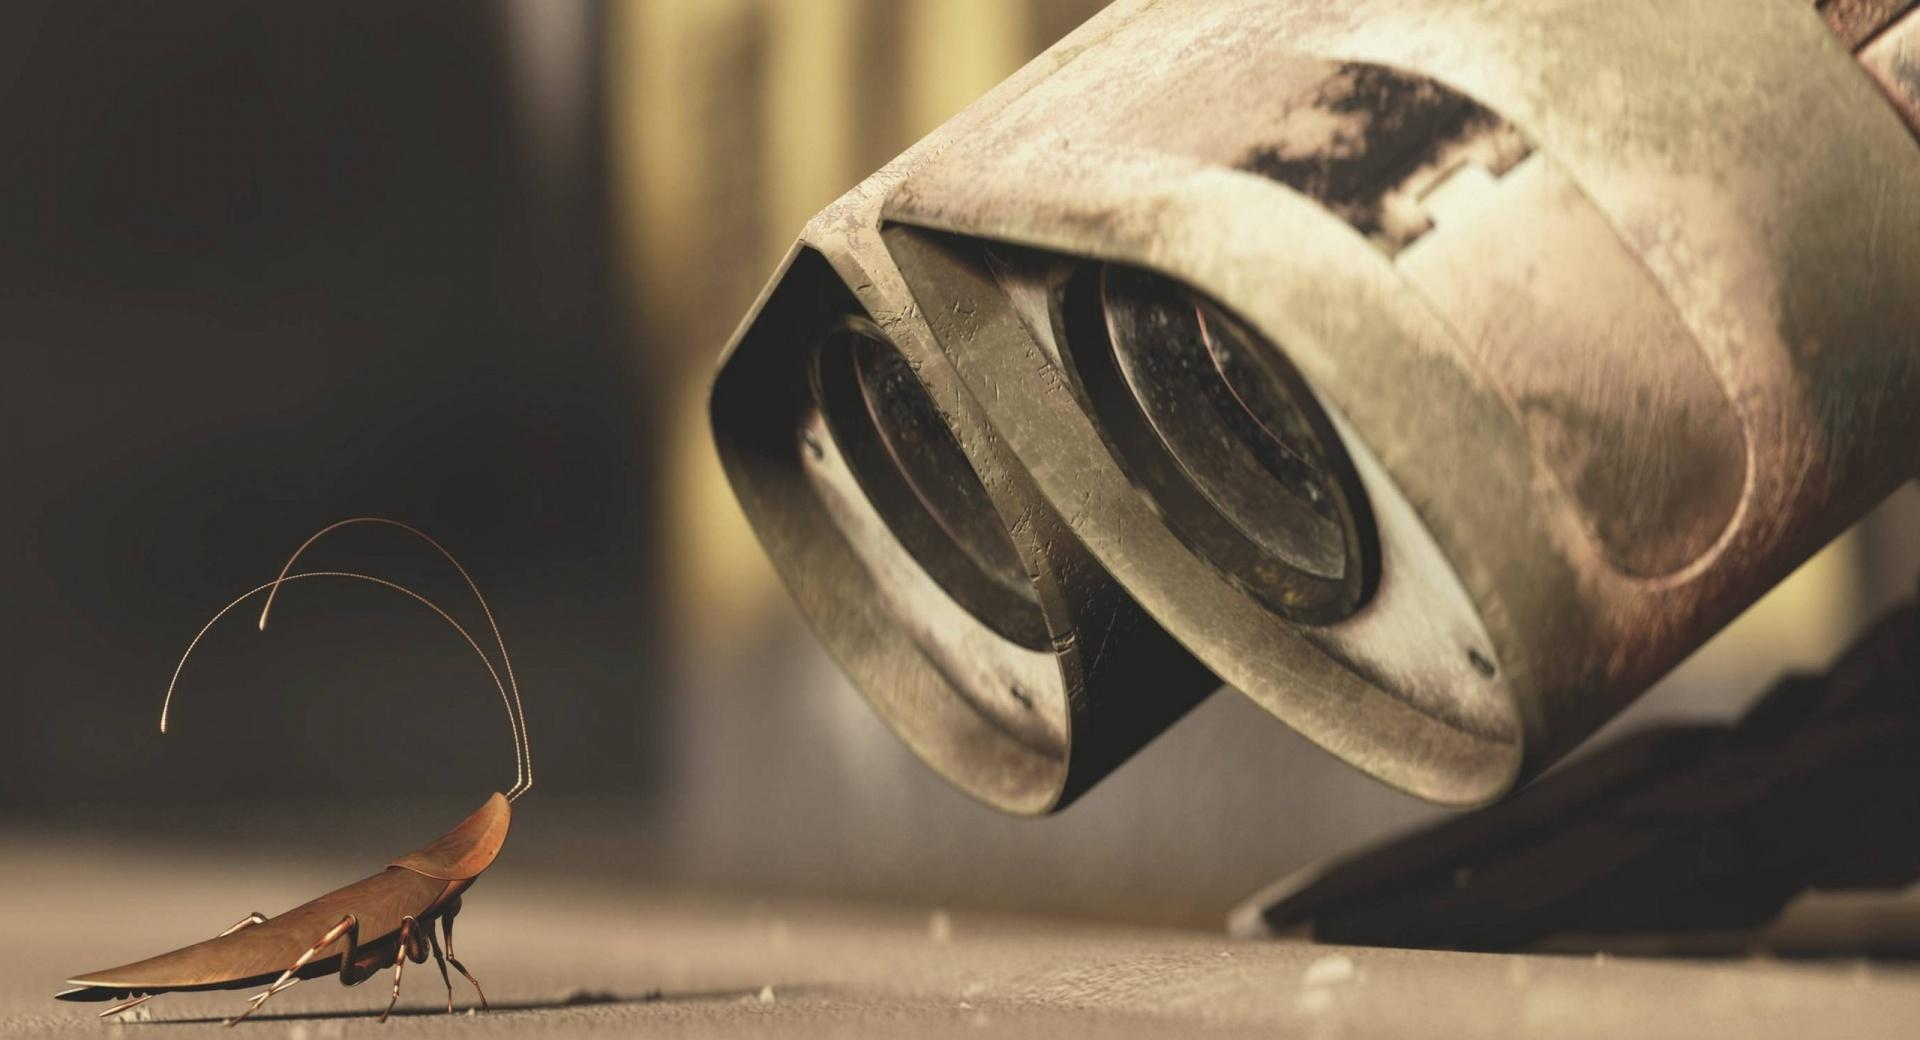 Wall E And A Cricket wallpapers HD quality